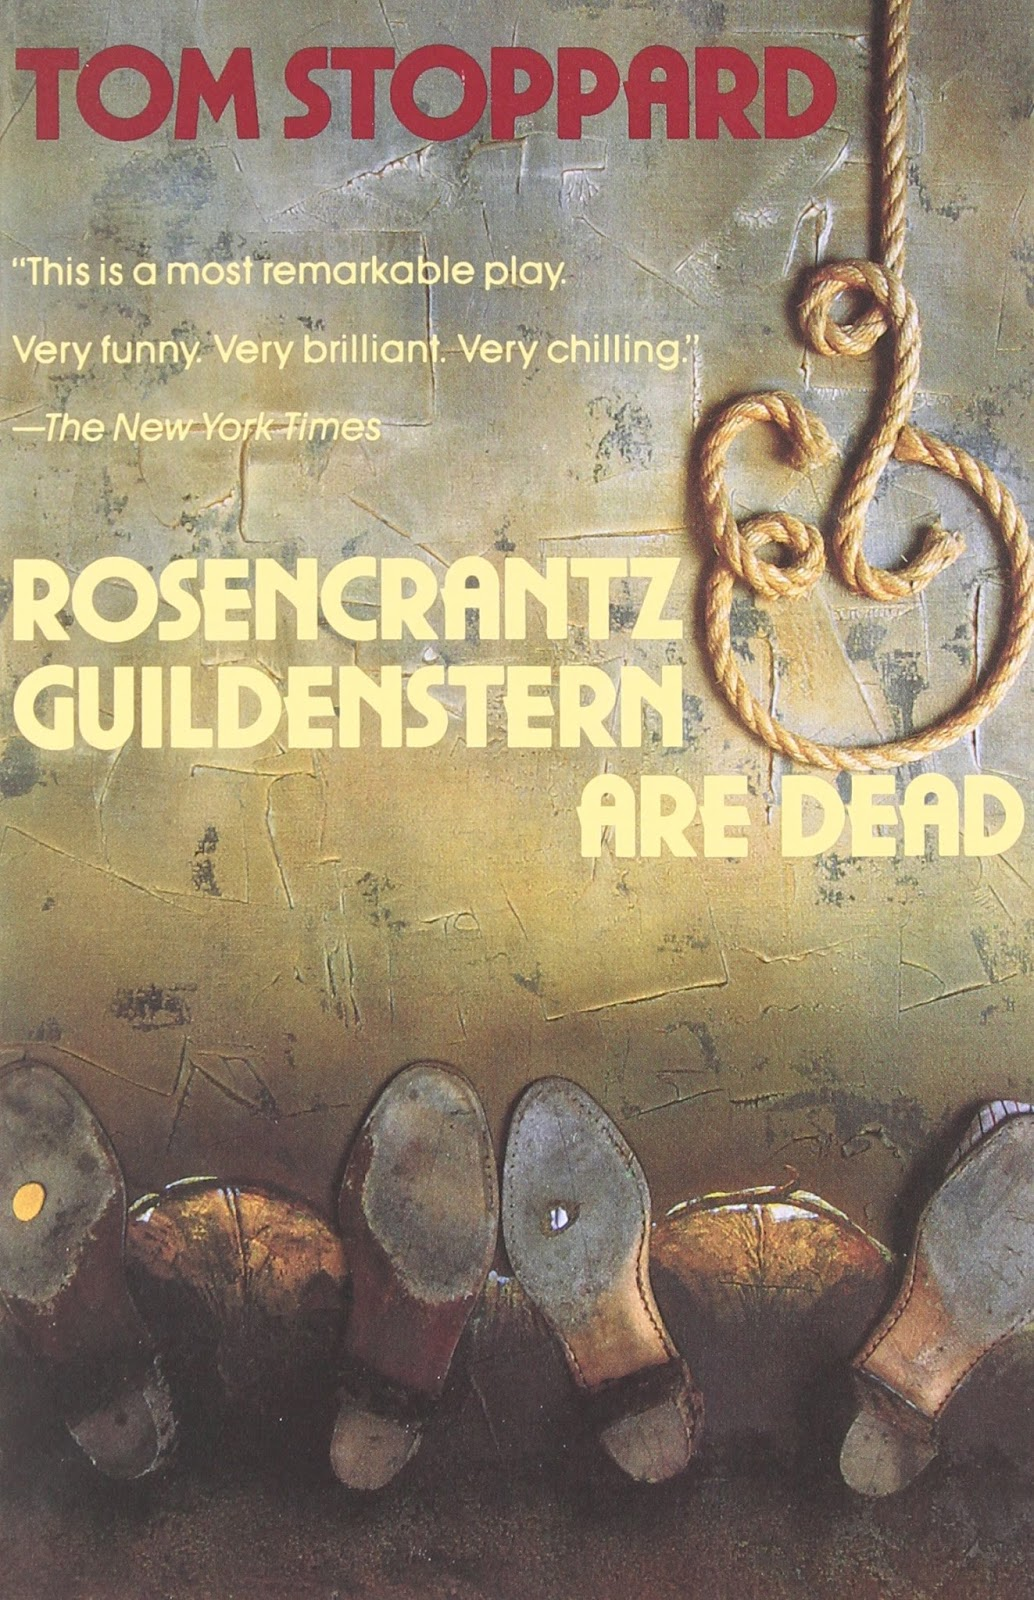 essay on hamlet and rosencrantz and guildenstern are dead Hamlet: in rosencrantz and gildenstern are dead essays also dead are hamlet, king of denmark, rosencrantz and guildenstern, former friends of hamlet, polonius, councilor to the king, and ophelia, daughter of polonius.